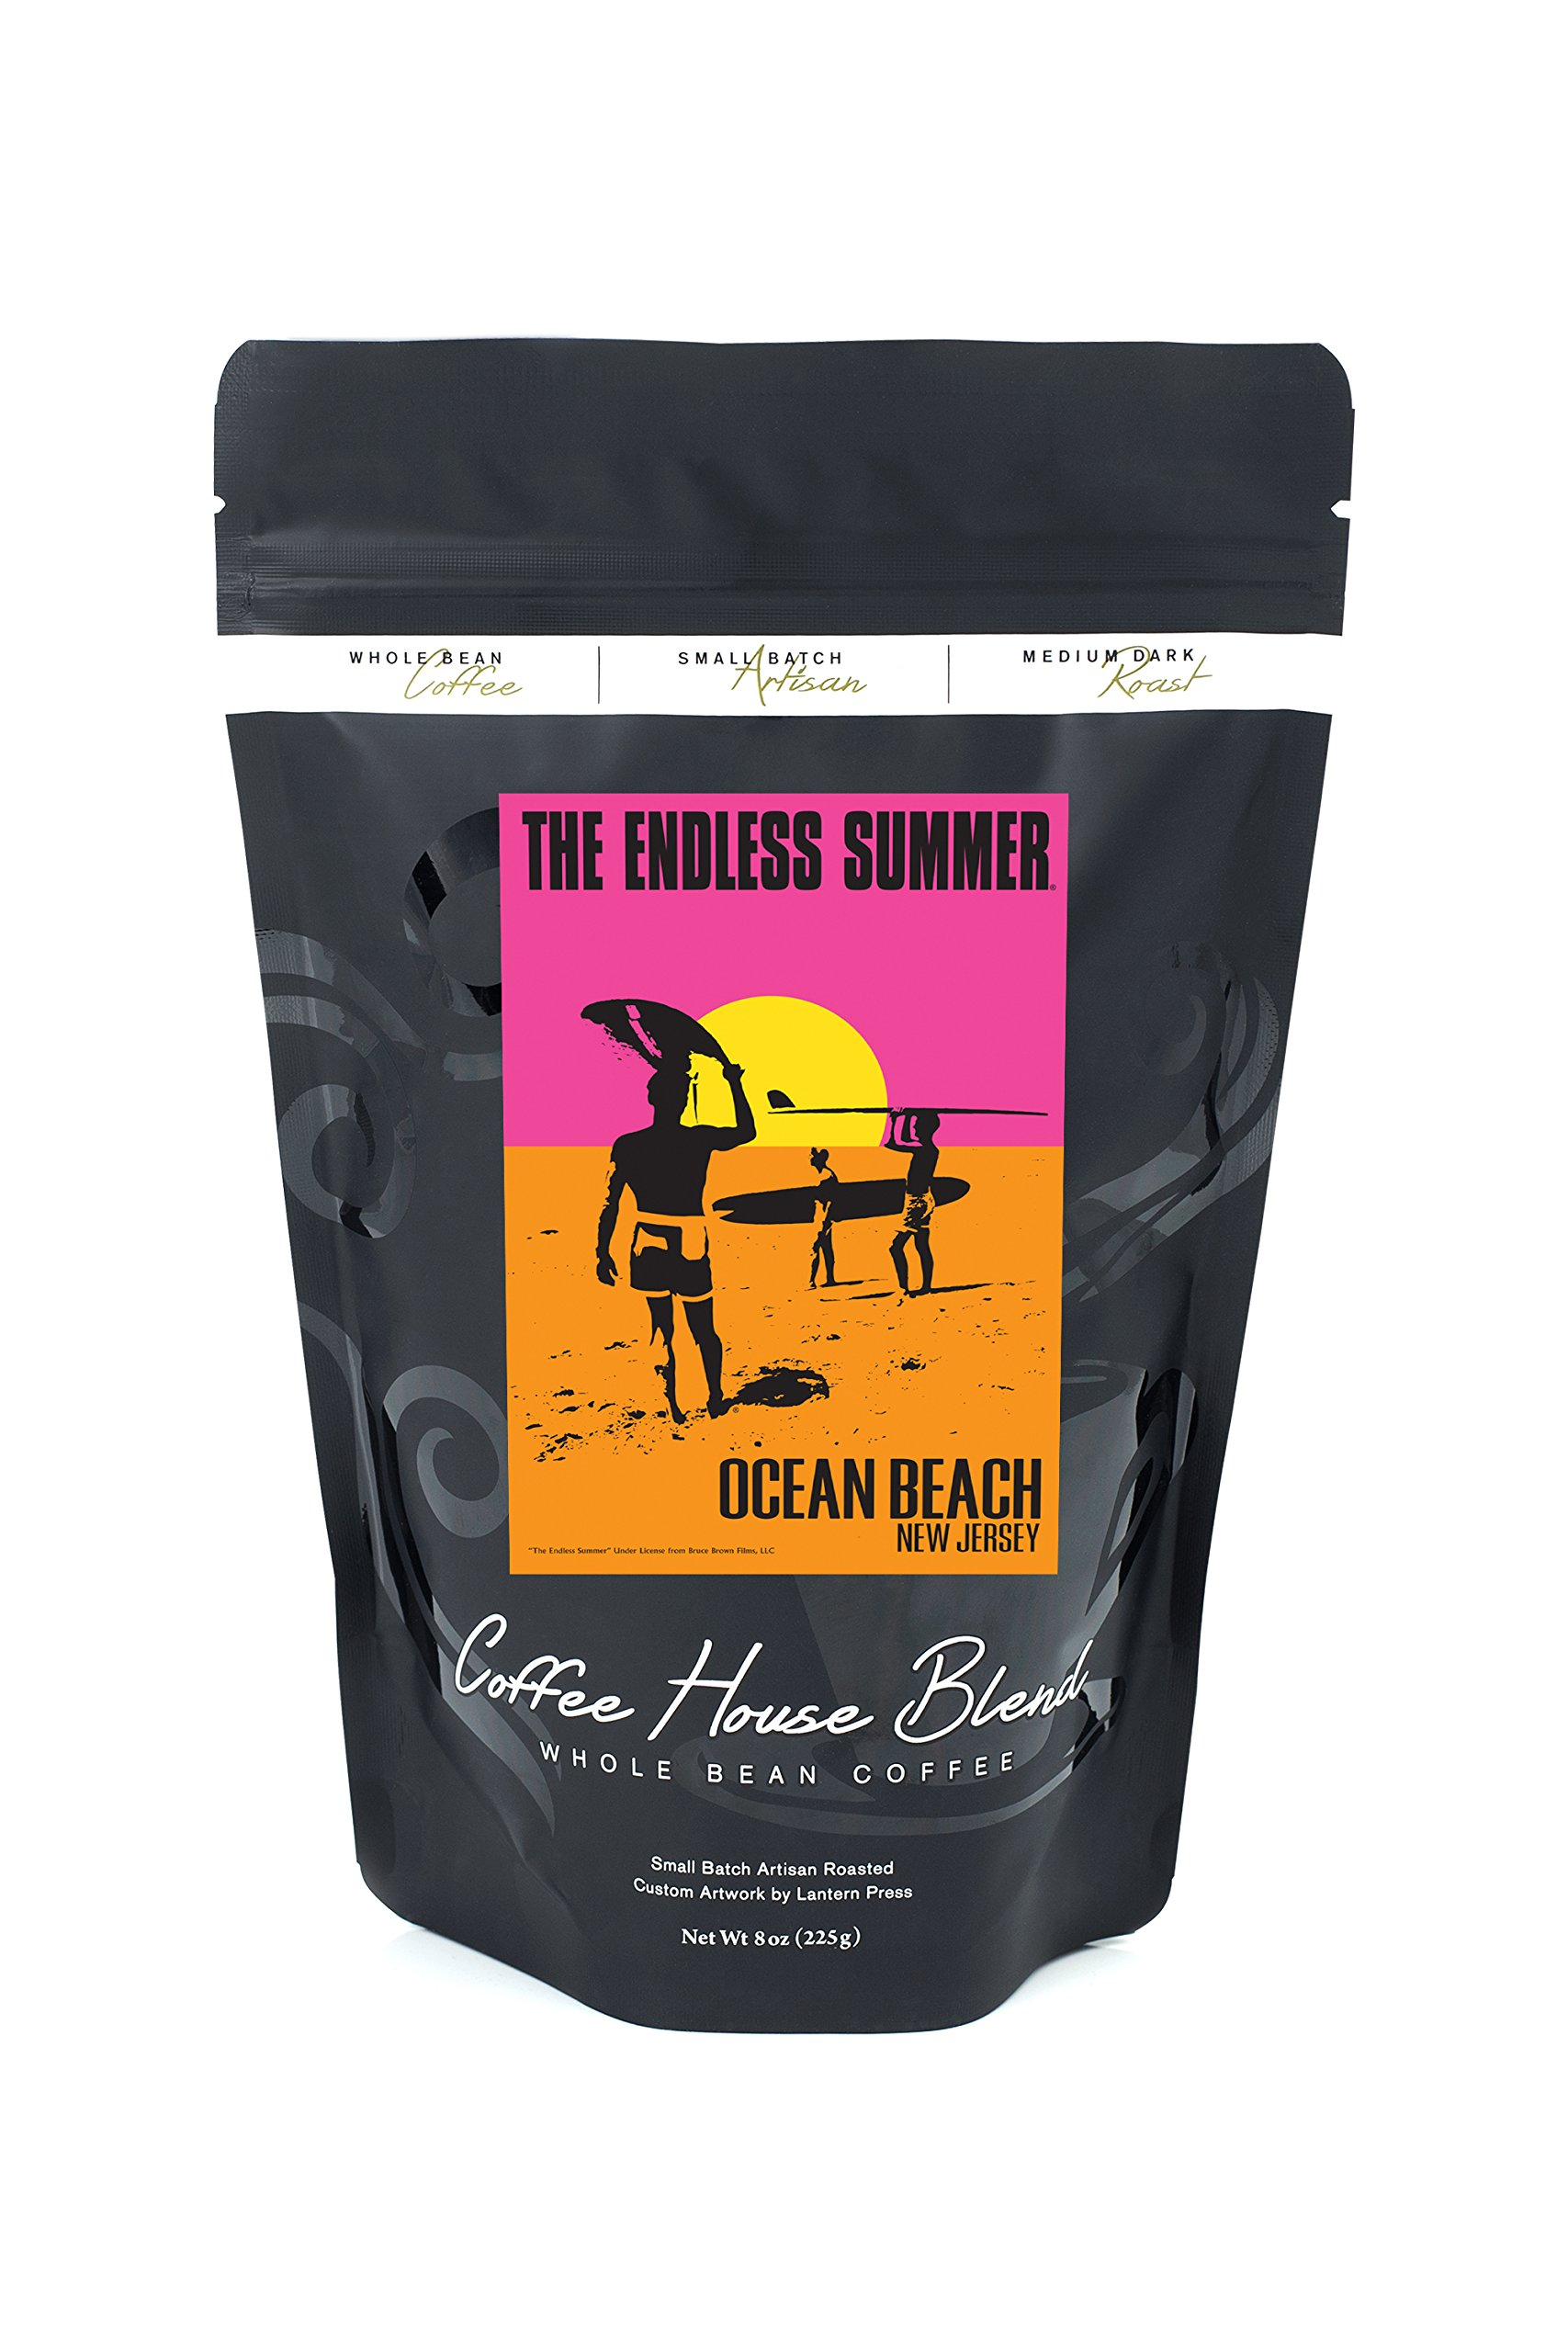 Ocean Beach, New Jersey - The Endless Summer - Original Movie Poster (8oz Whole Bean Small Batch Artisan Coffee - Bold & Strong Medium Dark Roast w/ Artwork)